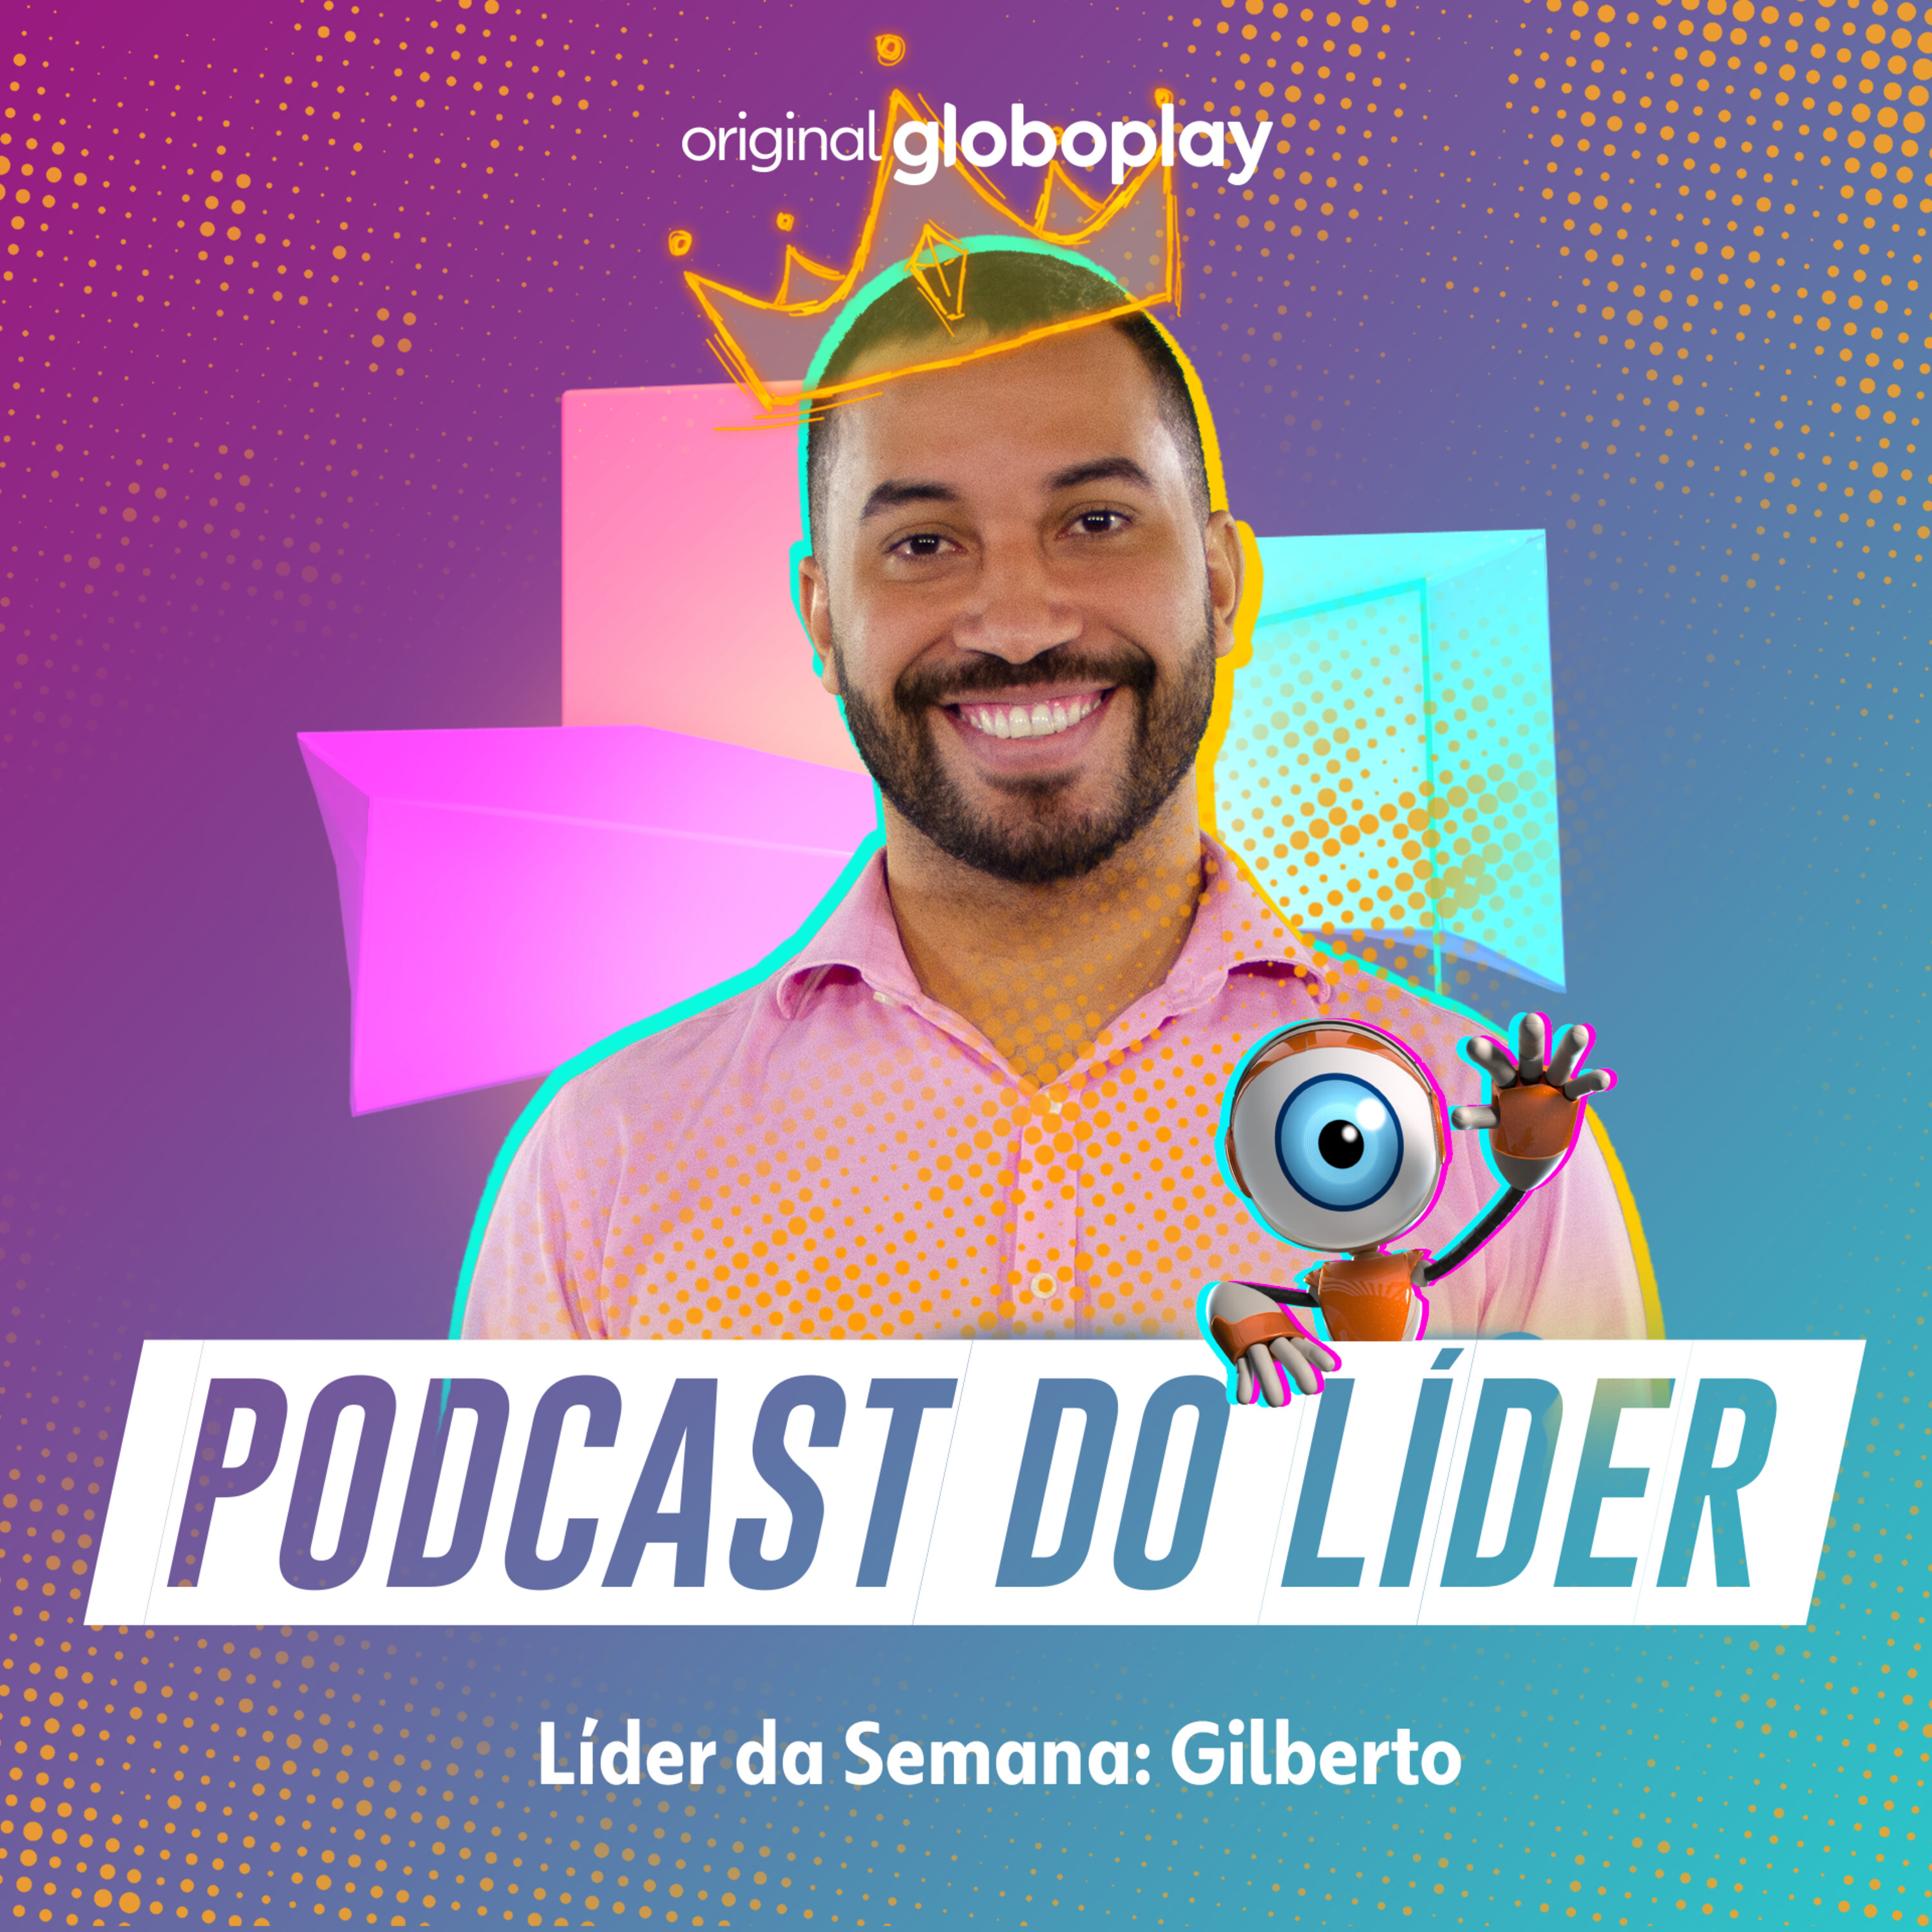 BBB Tá On: o Podcast do Líder Gilberto